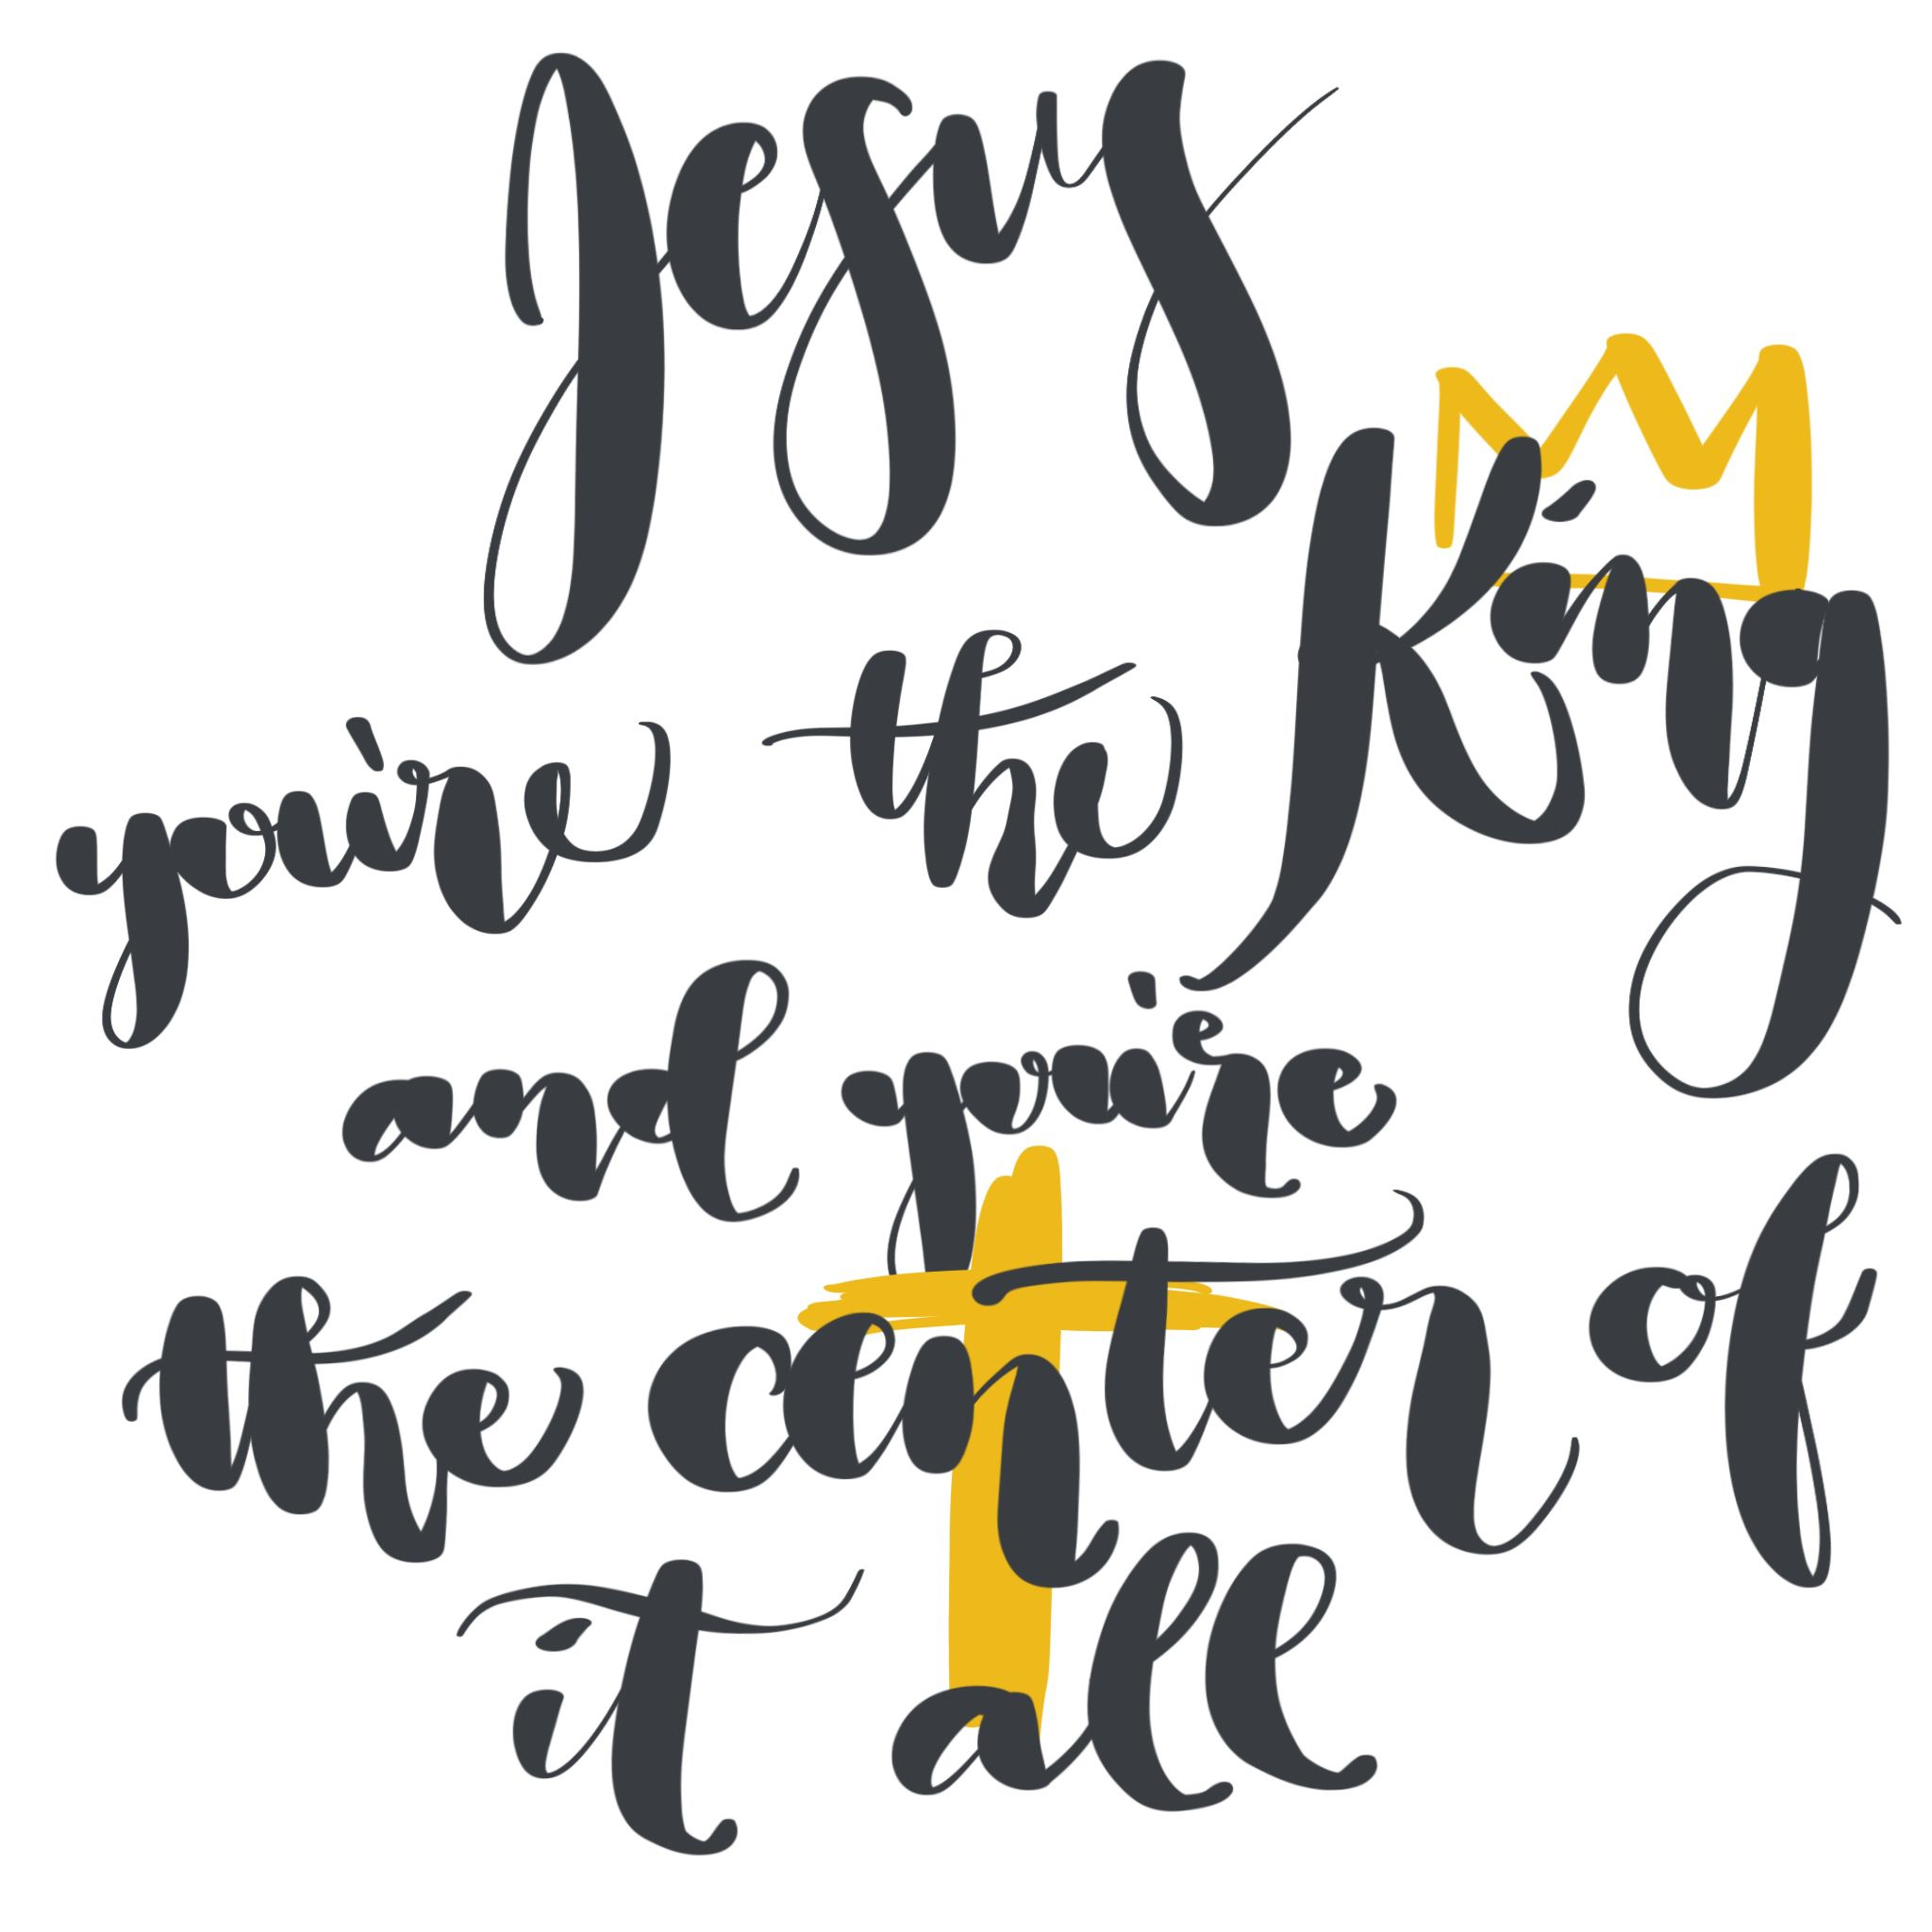 Jesus You Re The King And You Re The Center Of It All Bethel There Is A Name Christian Song Lyrics Christian Songs Album